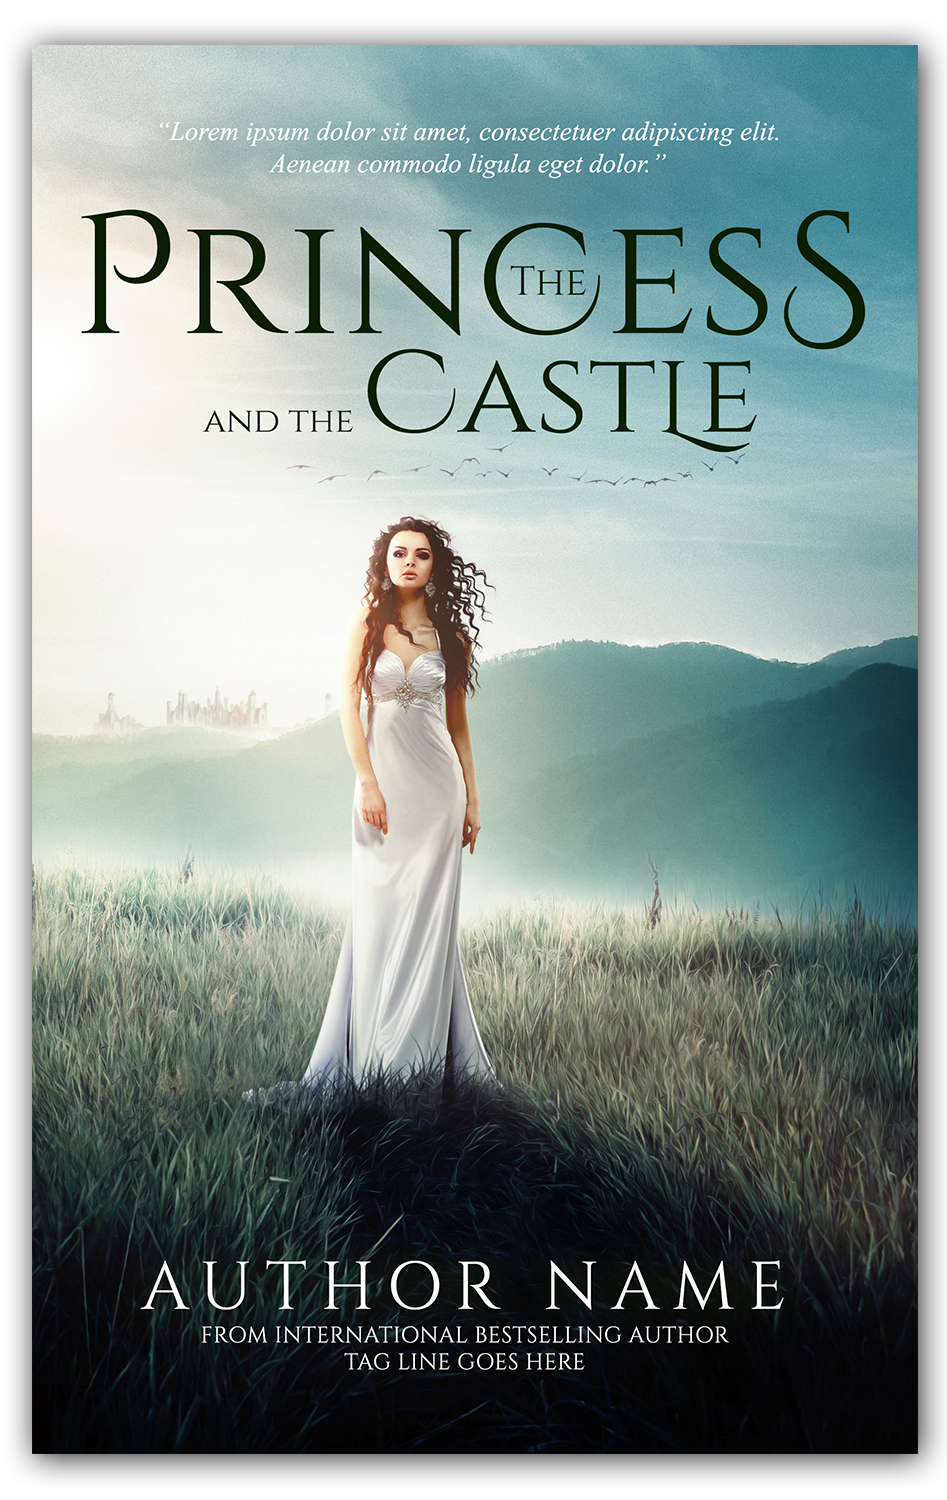 The Princess - ebook and paperback